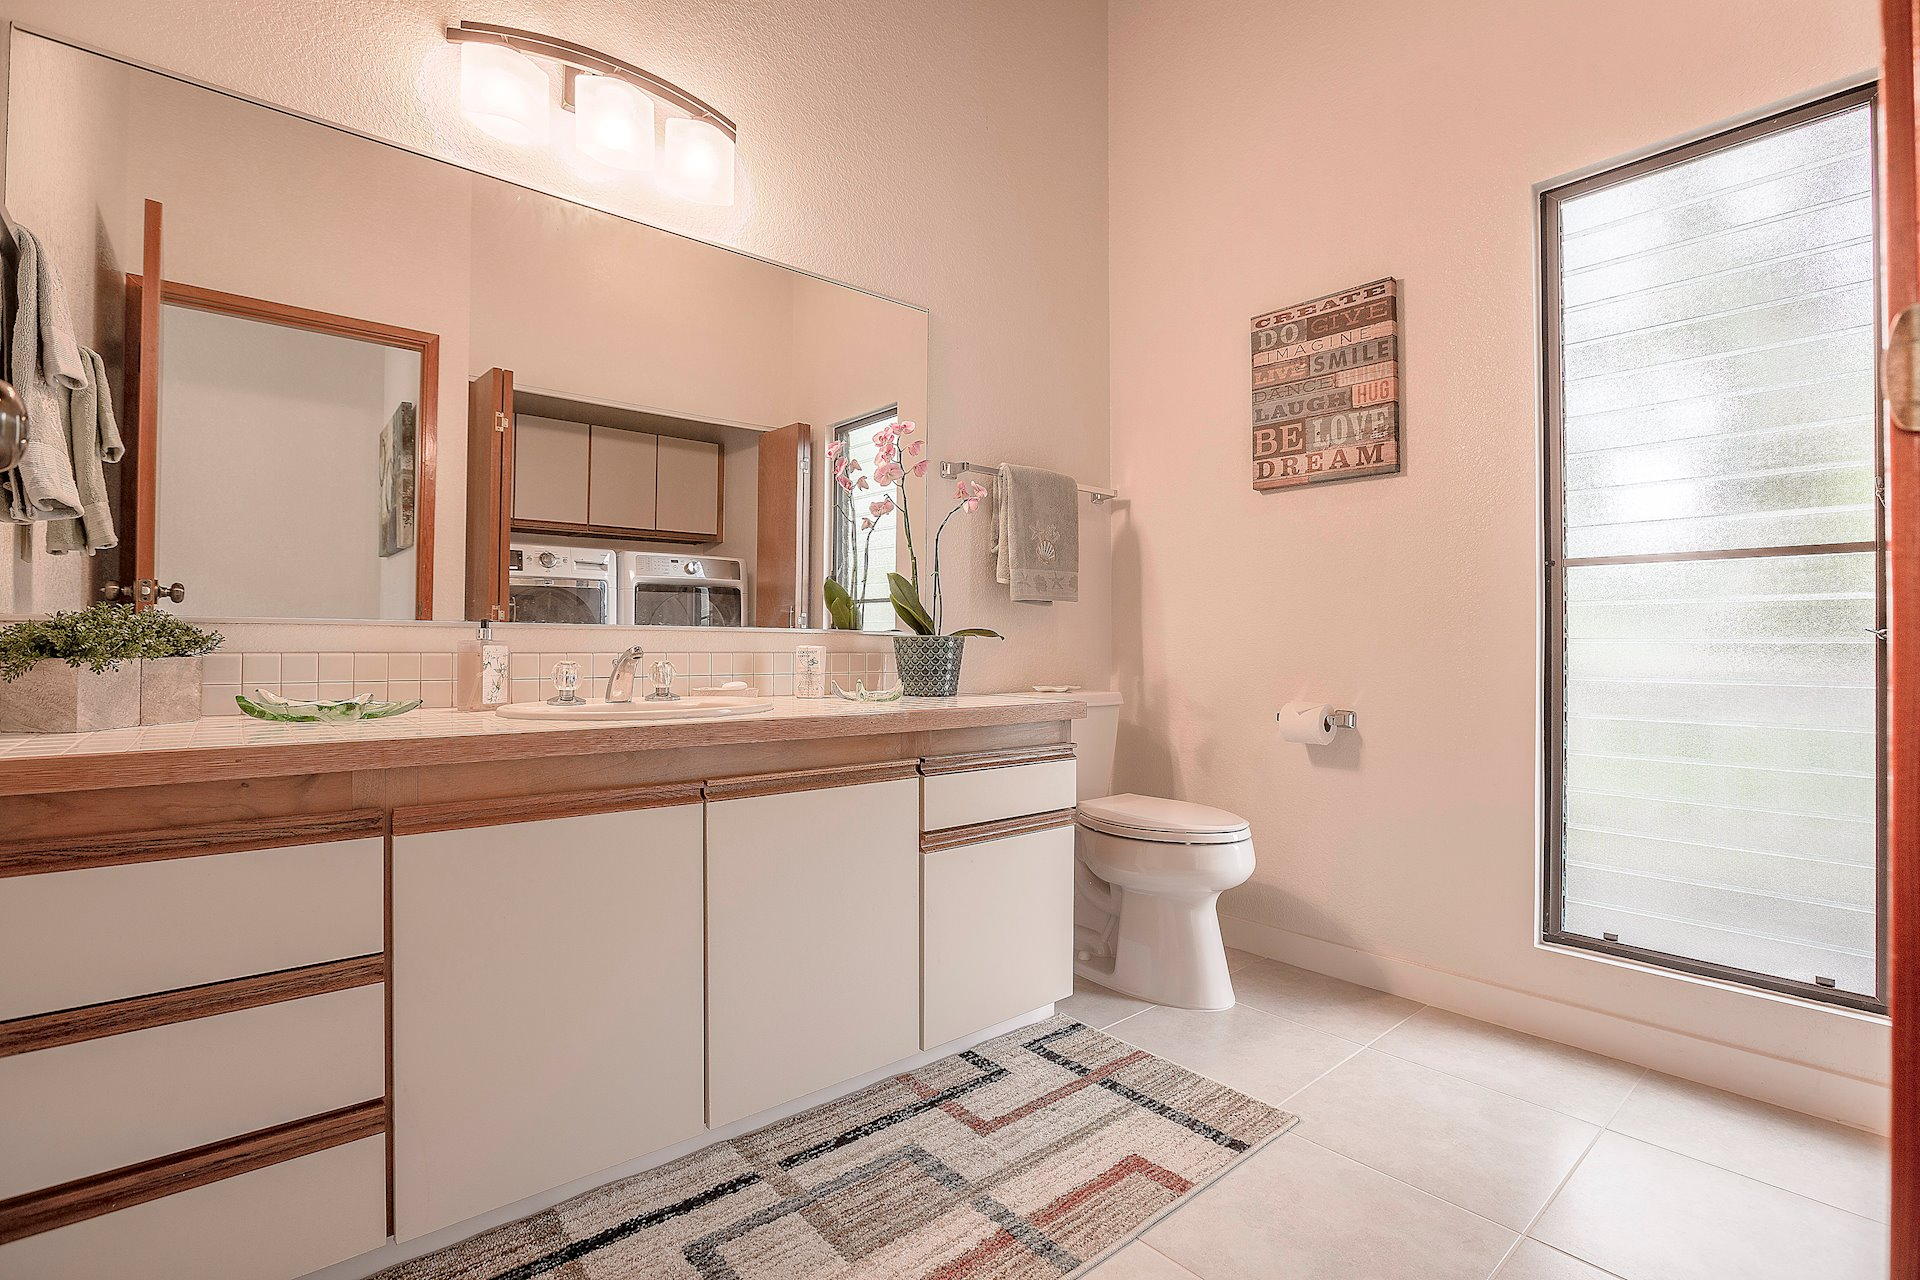 Half bath located upstairs, acting as the powder room, guest bathroom and also home to the newer washer/dryer.